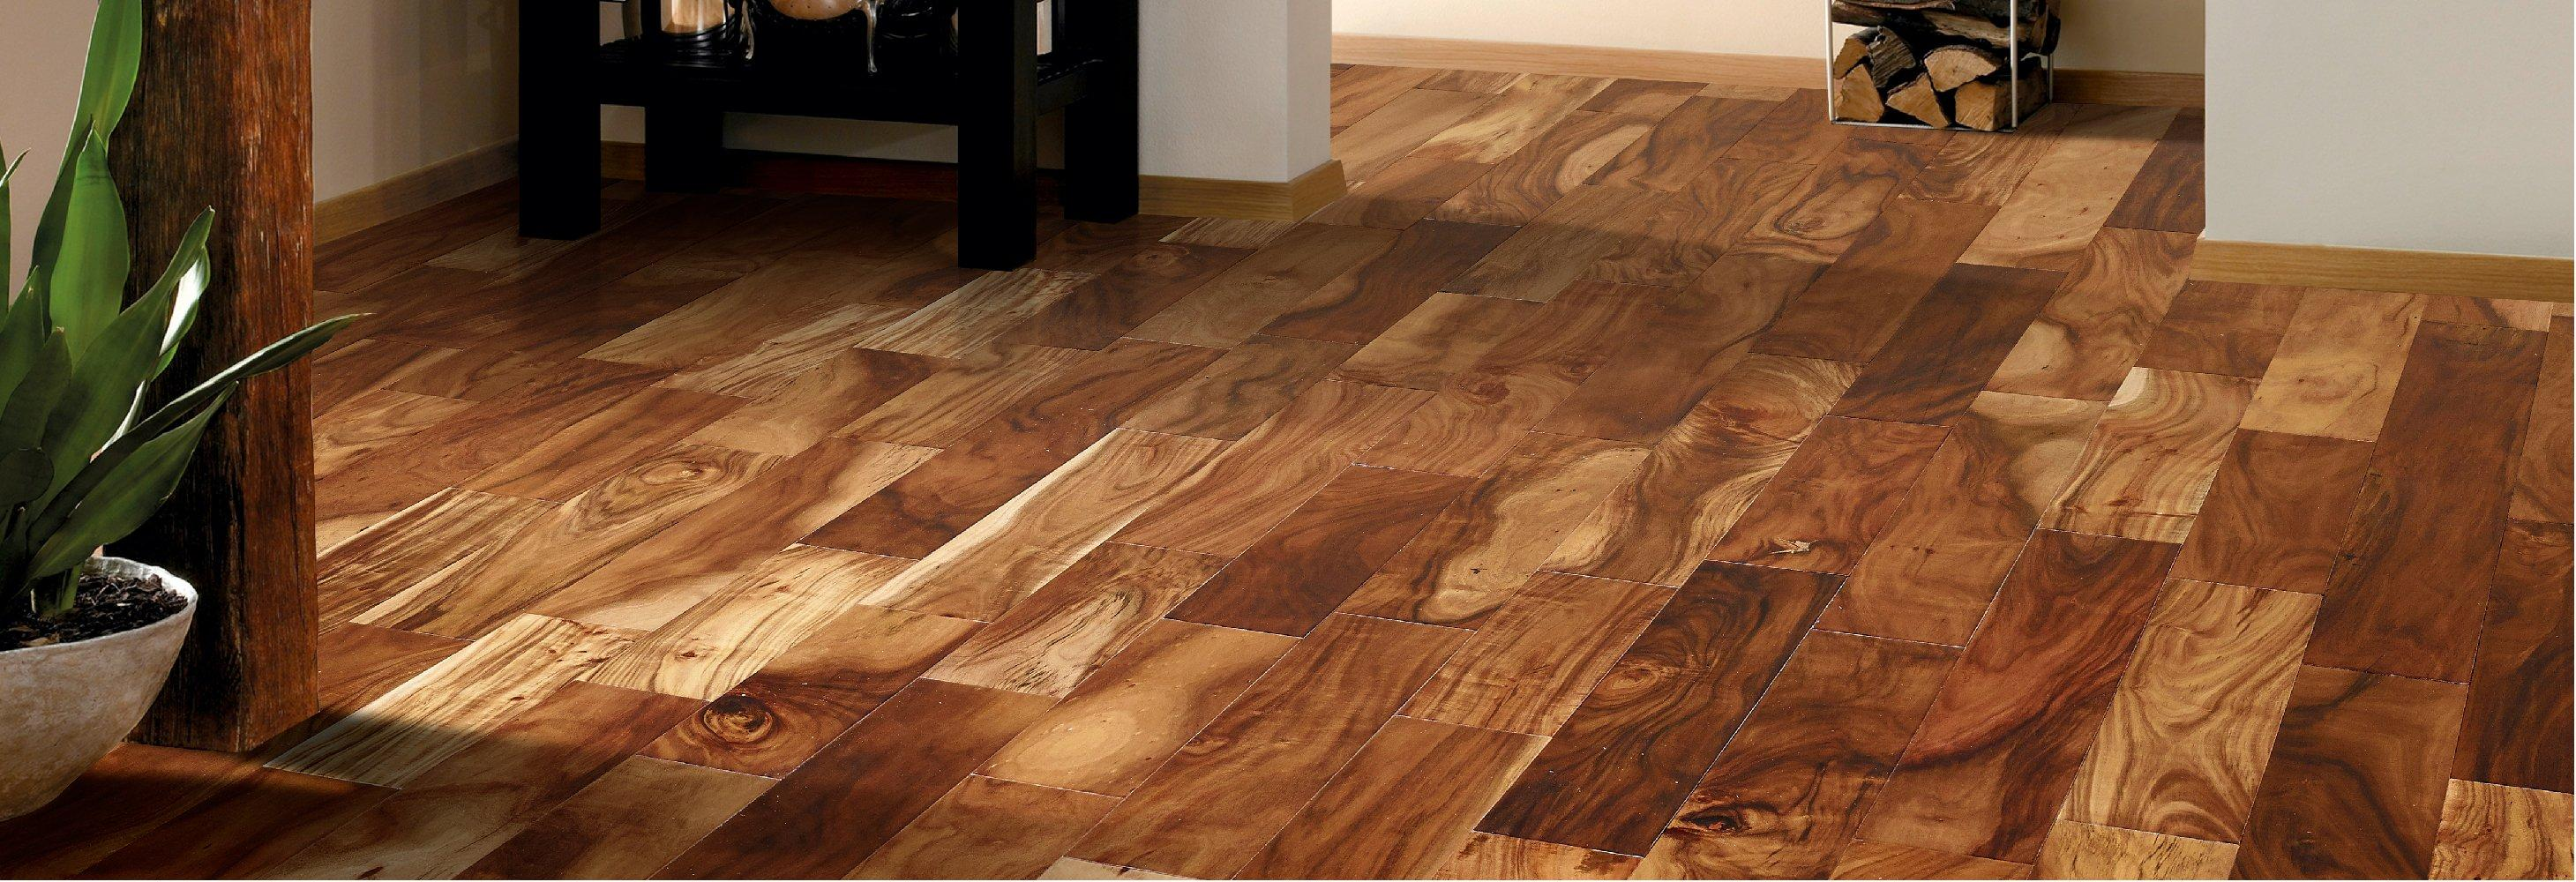 engineered flooring engineered hardwood flooring RJUVDTJ